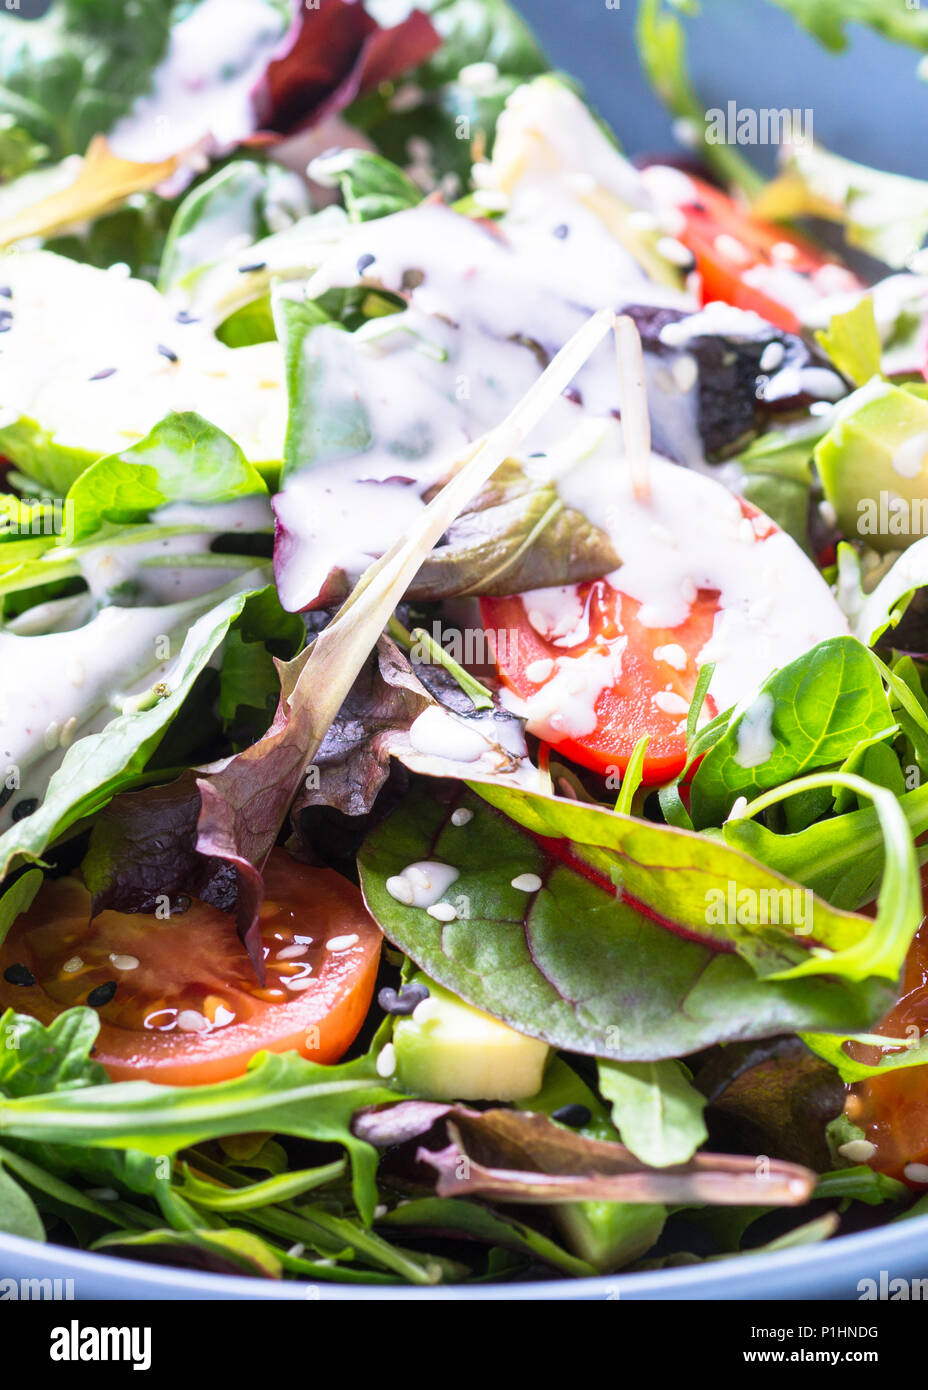 Fresh green salad with mixed green leaves, tomatoes and avocado with sesame and yogurt dressing. Close up. - Stock Image